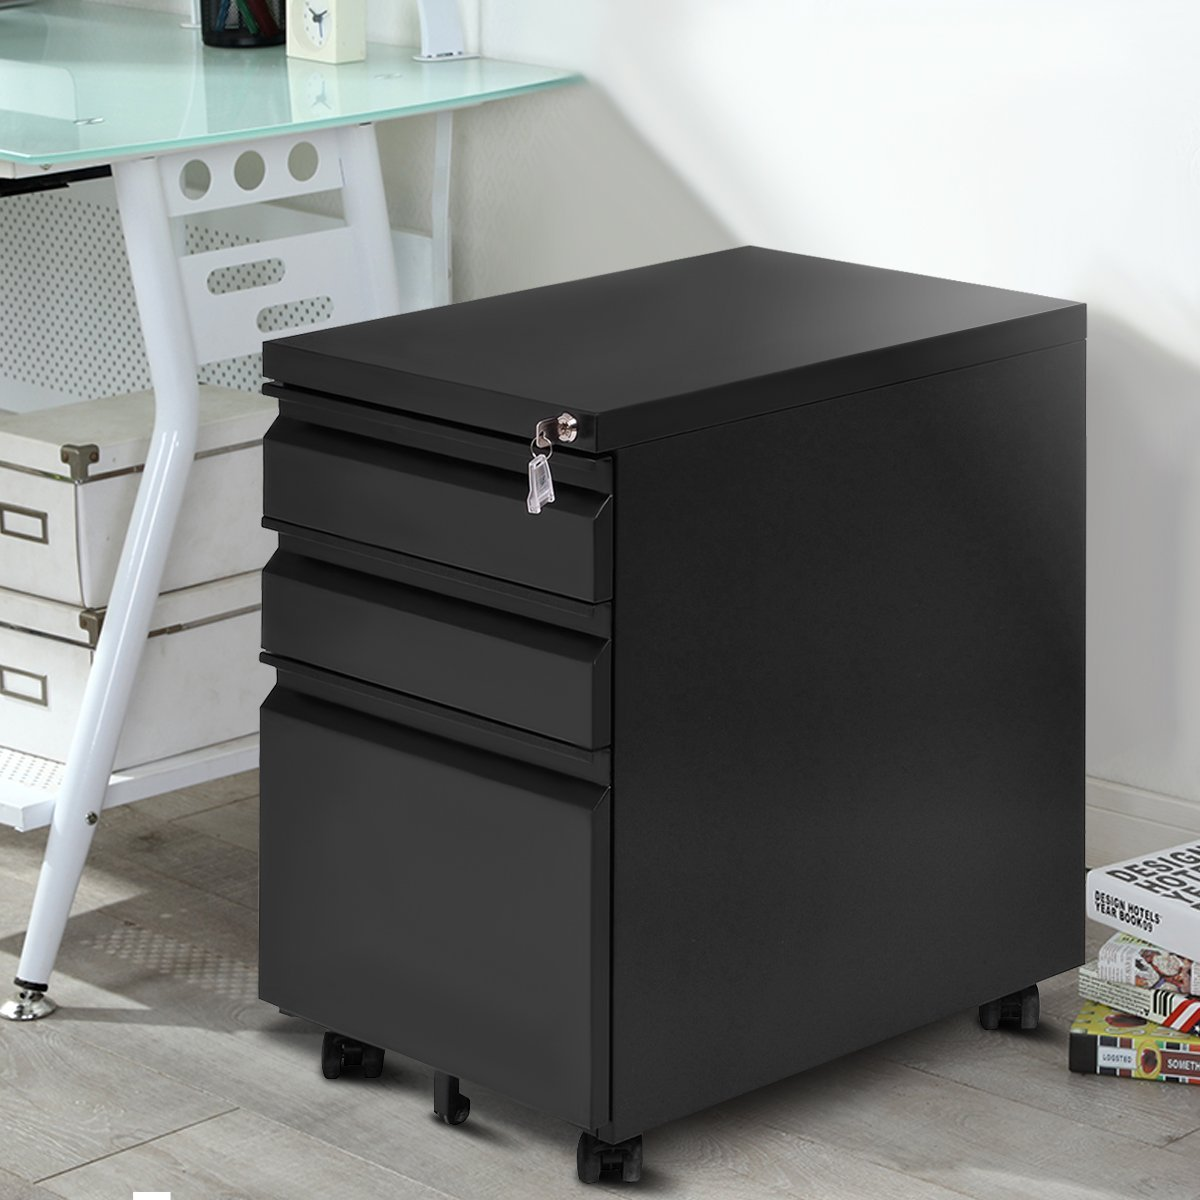 Giantex Rolling Mobile File W/3 Lockable Drawers and Pedestal for Office Study Room Home Steel Storage Cabinet by Giantex (Image #2)